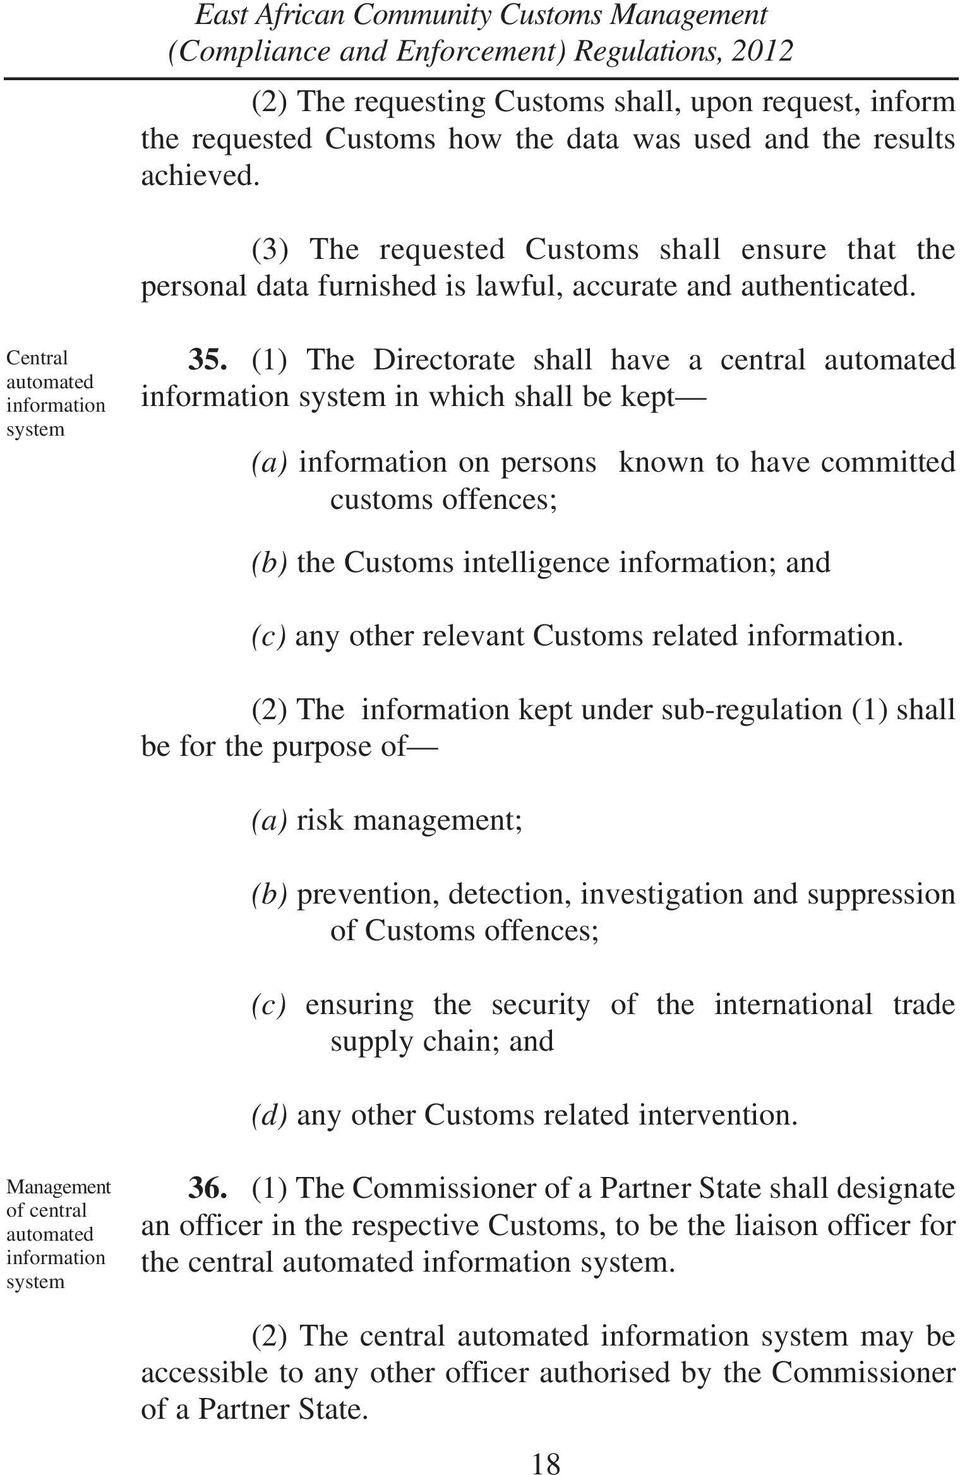 (1) The Directorate shall have a central automated information system in which shall be kept (a) information on persons known to have committed customs offences; (b) the Customs intelligence